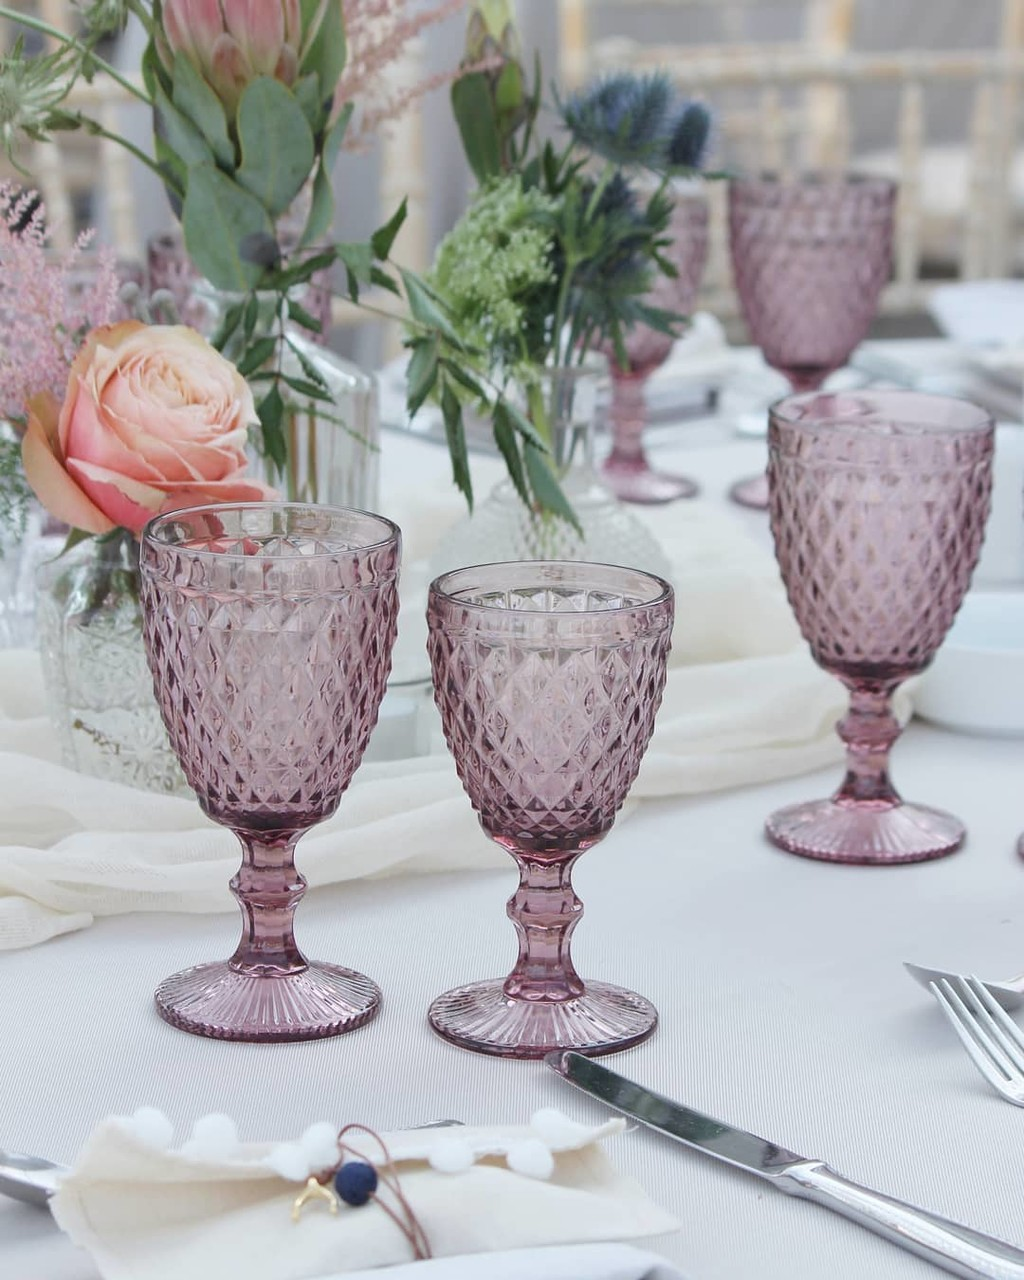 ▪throwback to this romantic bohemian wedding with vintage glasses and custom made boho wedding favor▪